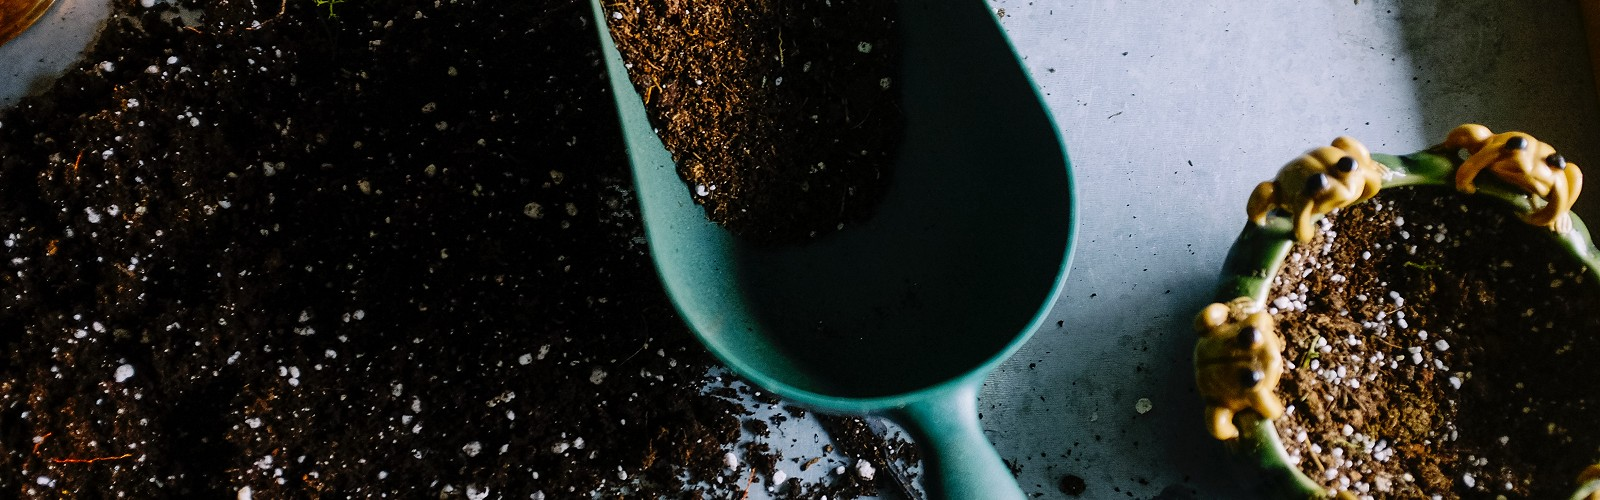 scoop of compost on a work bench (image: Neslihan Gunaydin on Unsplash)